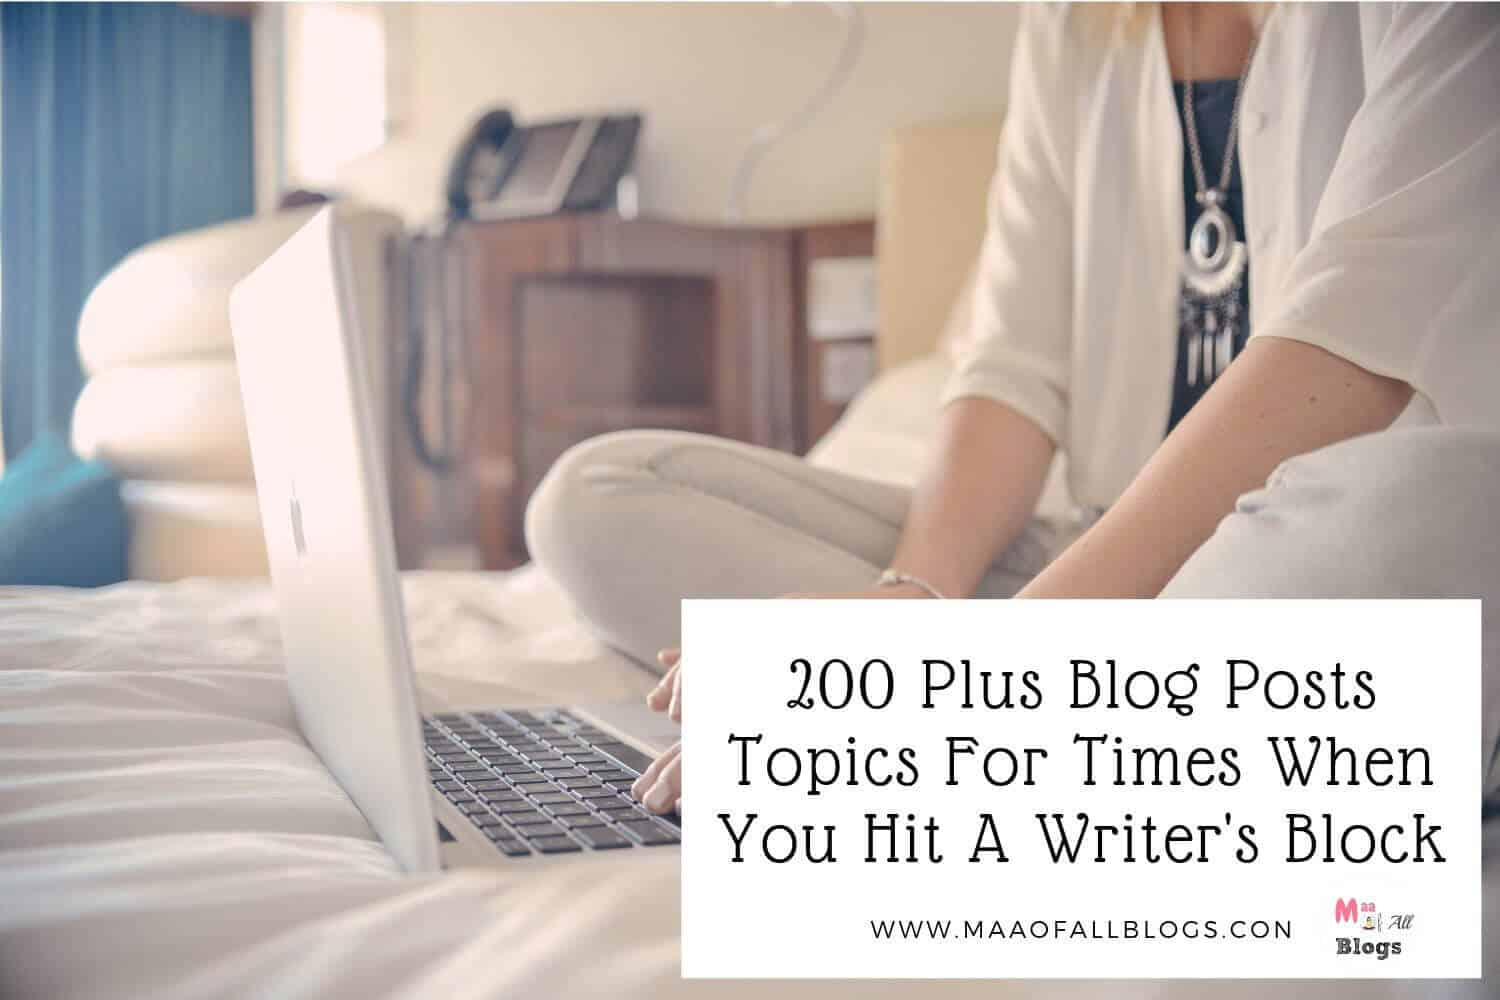 200 Plus Blog Post Topics For Times When You Hit A Writer